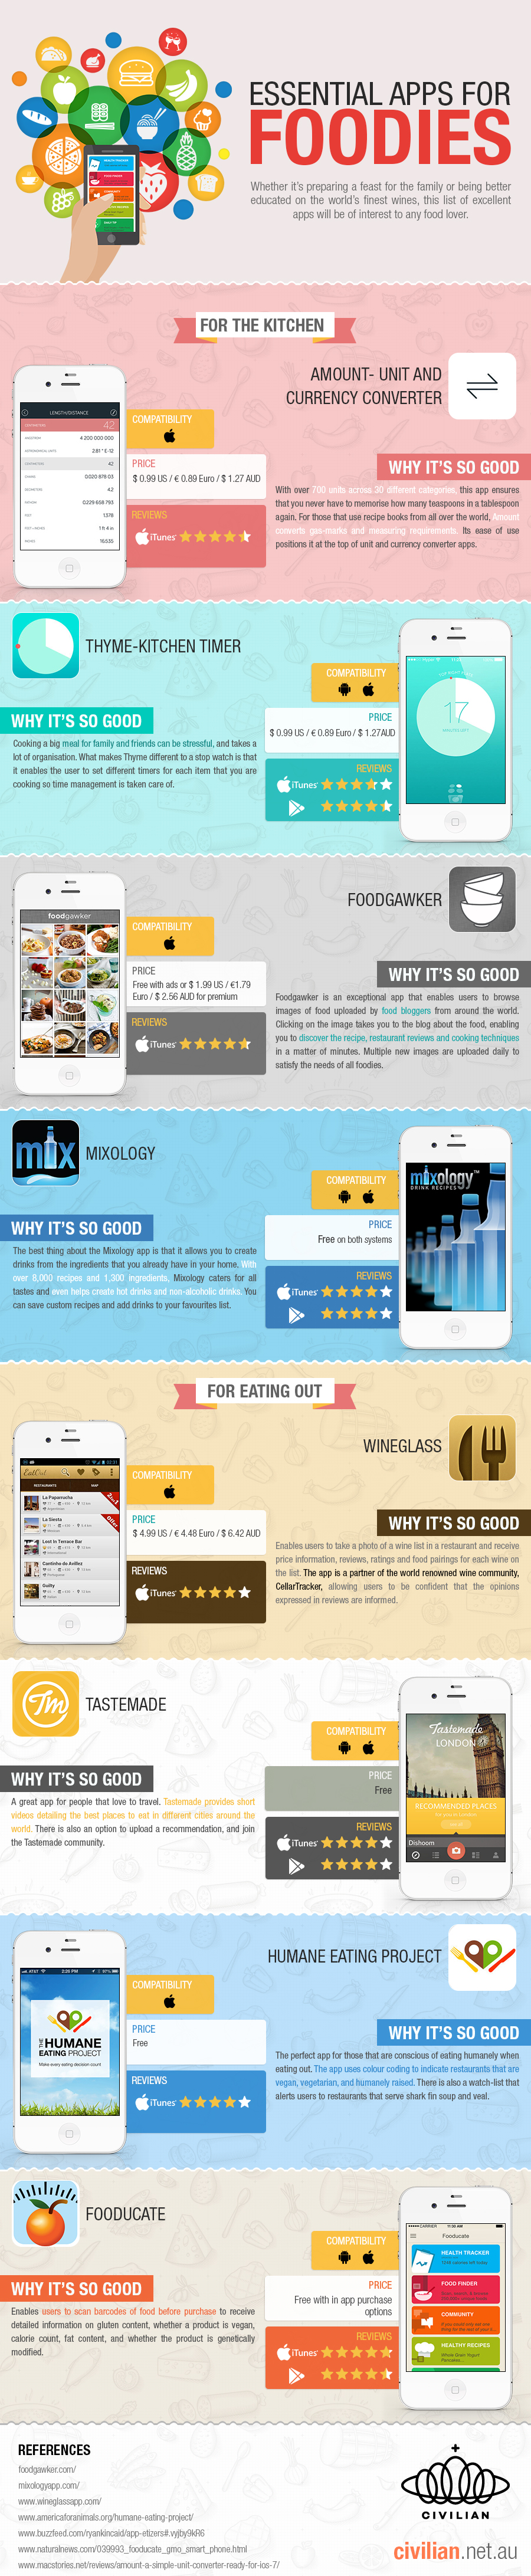 Essential Apps for Foodies